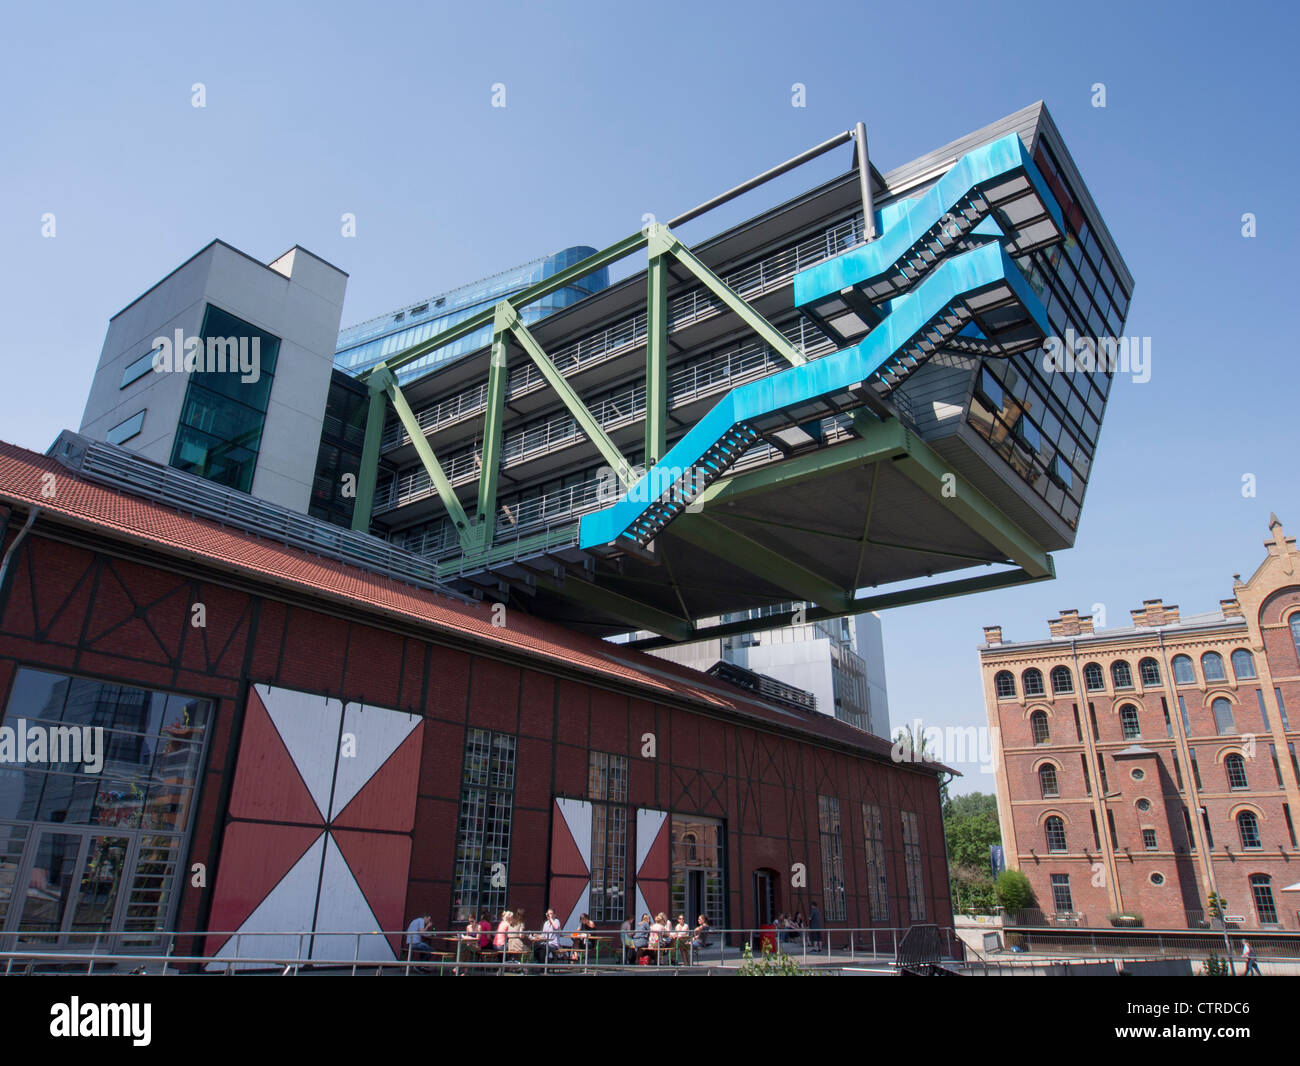 ogilvy new york office. Modern Architecture Of Ogilvy Advertising Agency Headquarters At Medienhafen Or Media Harbour In Dusseldorf Germany - New York Office